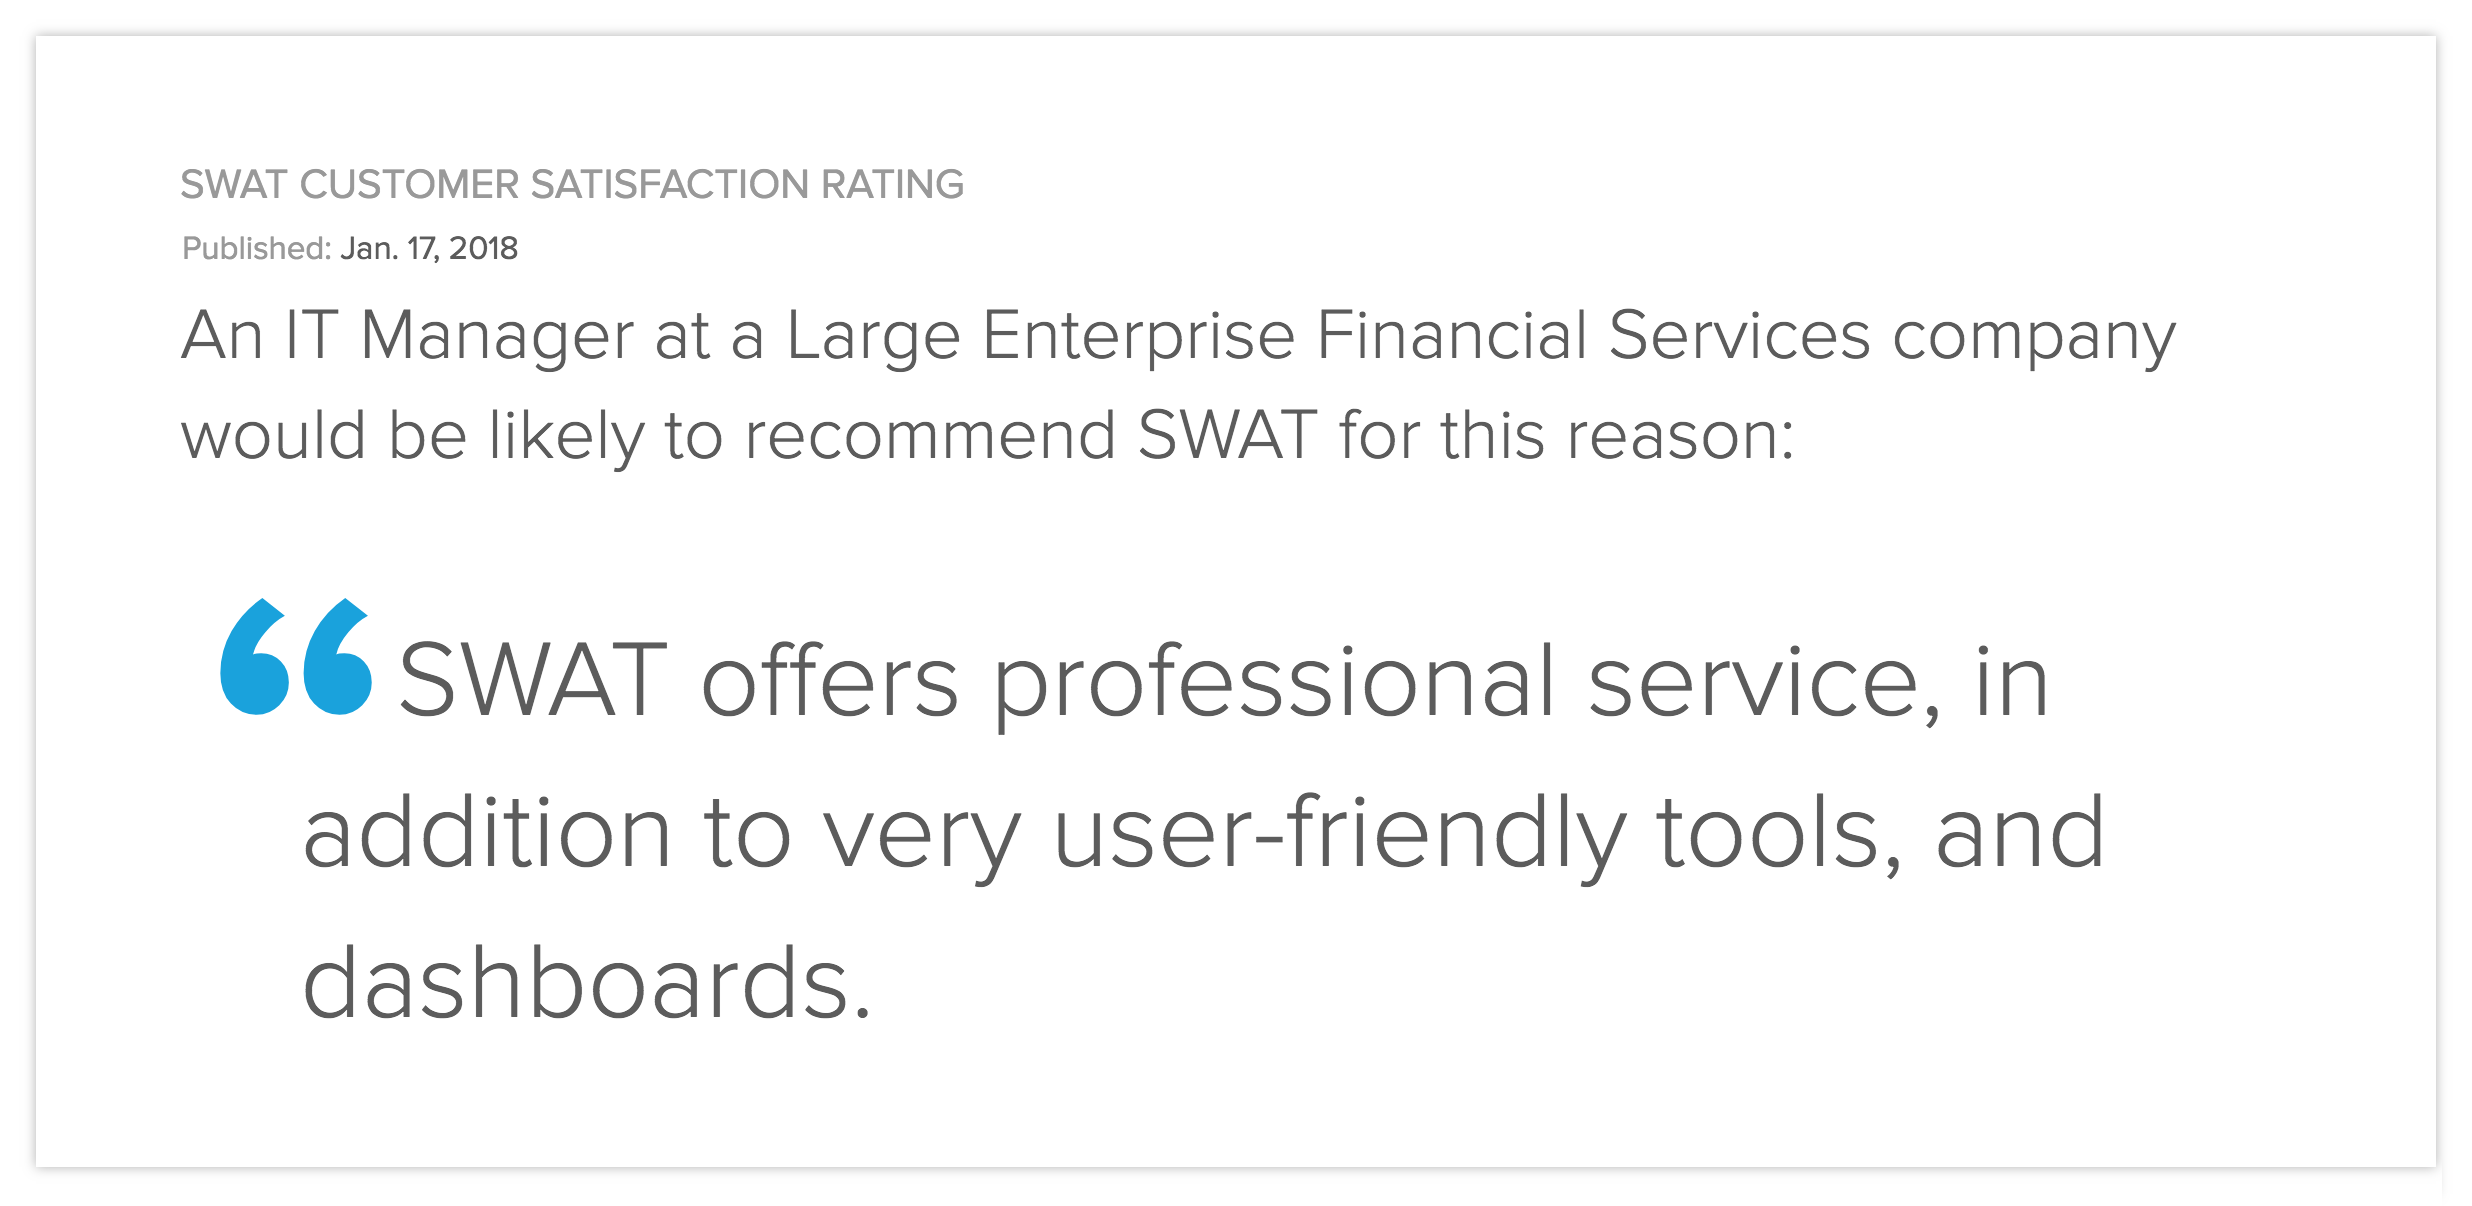 SWAT offers professional service, in addition to very user-friendly tools, and dashboards